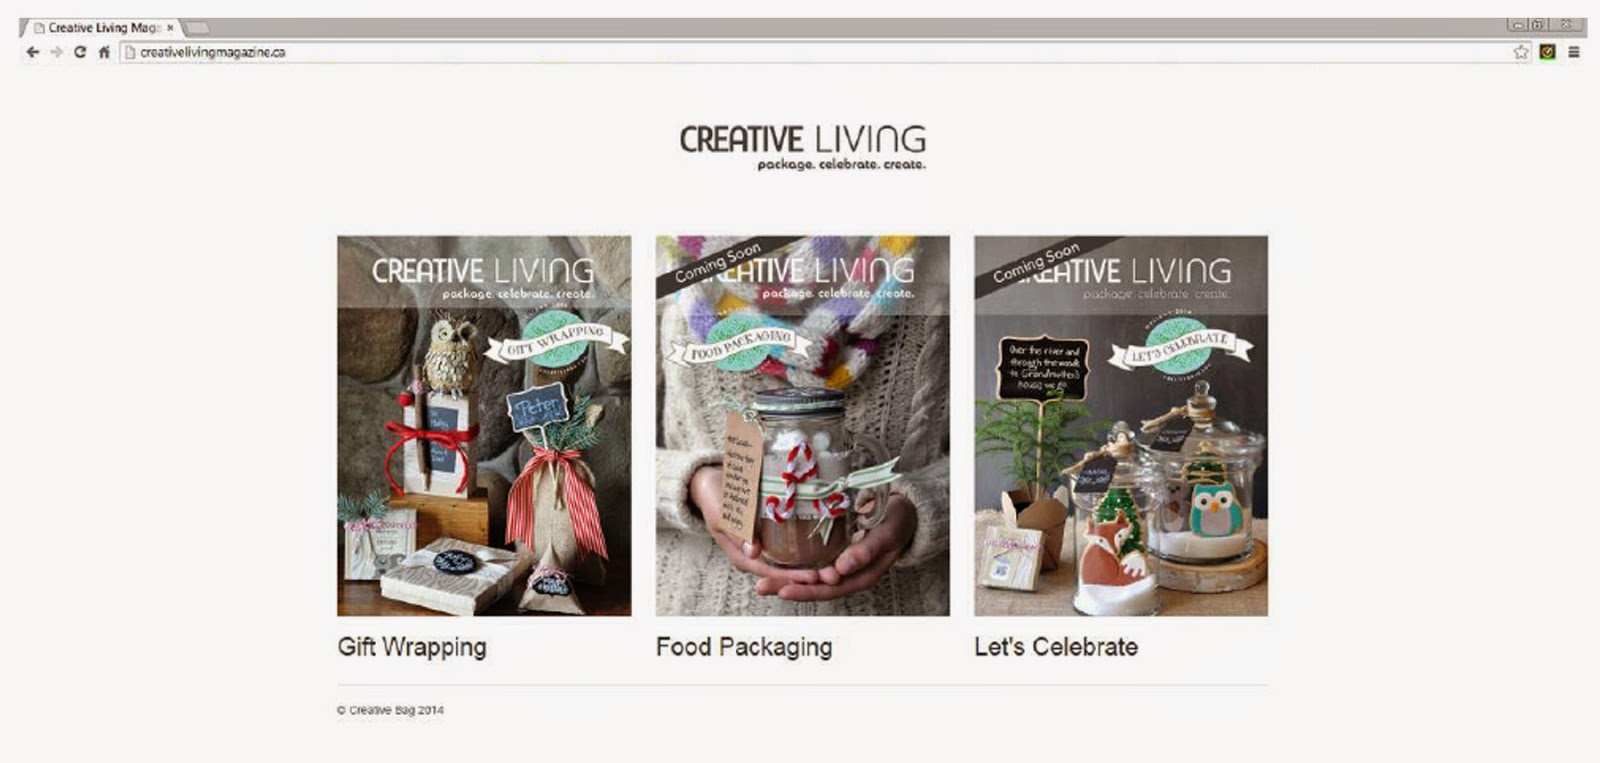 Creative Living Magazines by Creative Bag